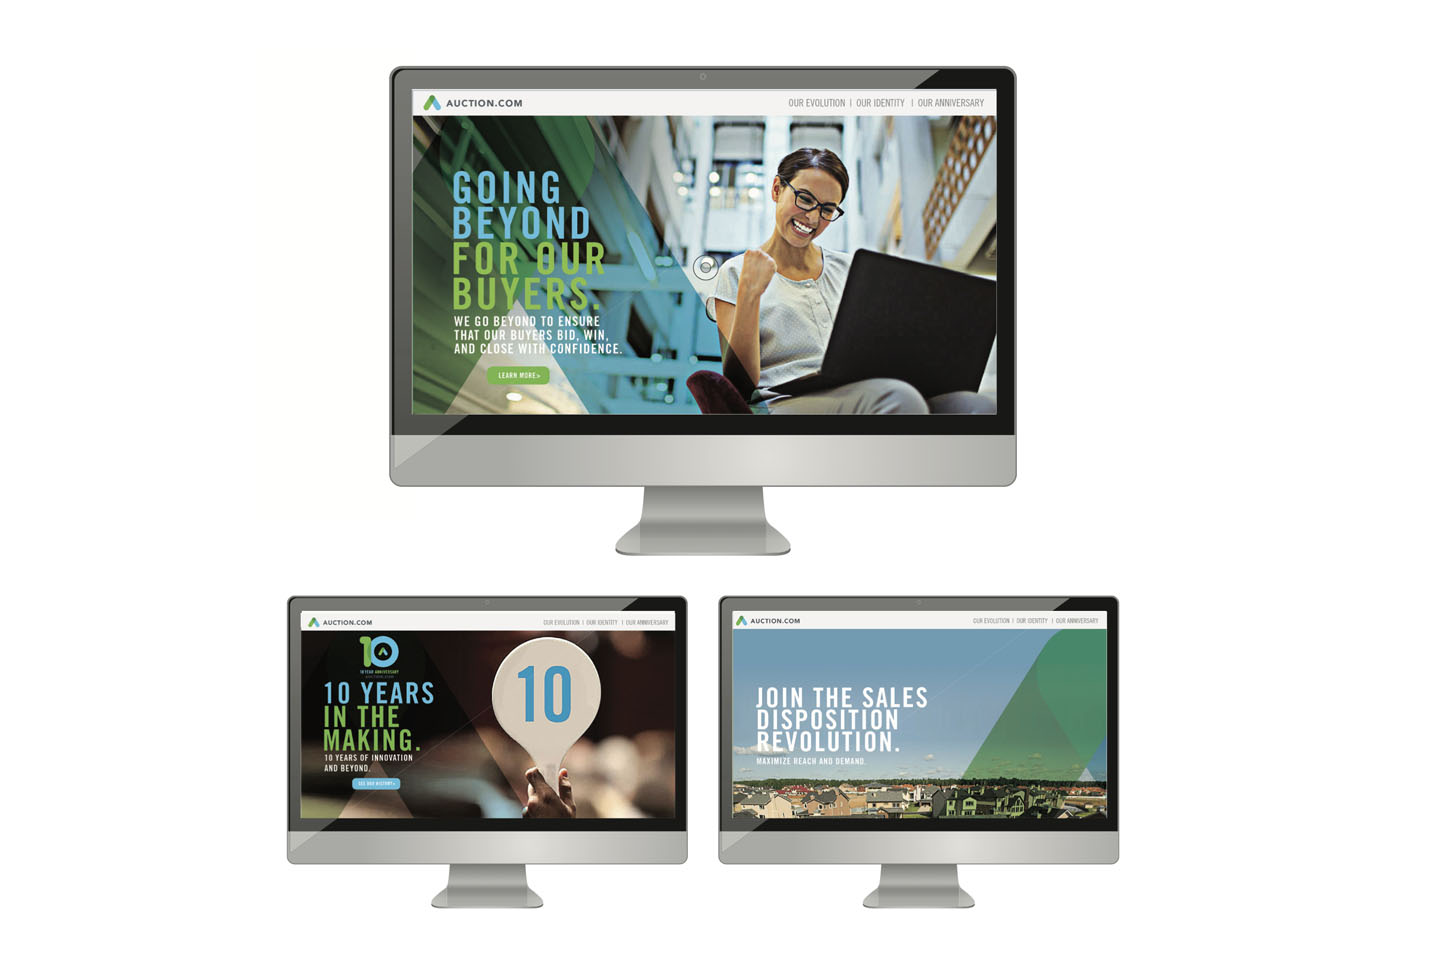 Auction.com website refresh by creative marketing agency in Costa Mesa